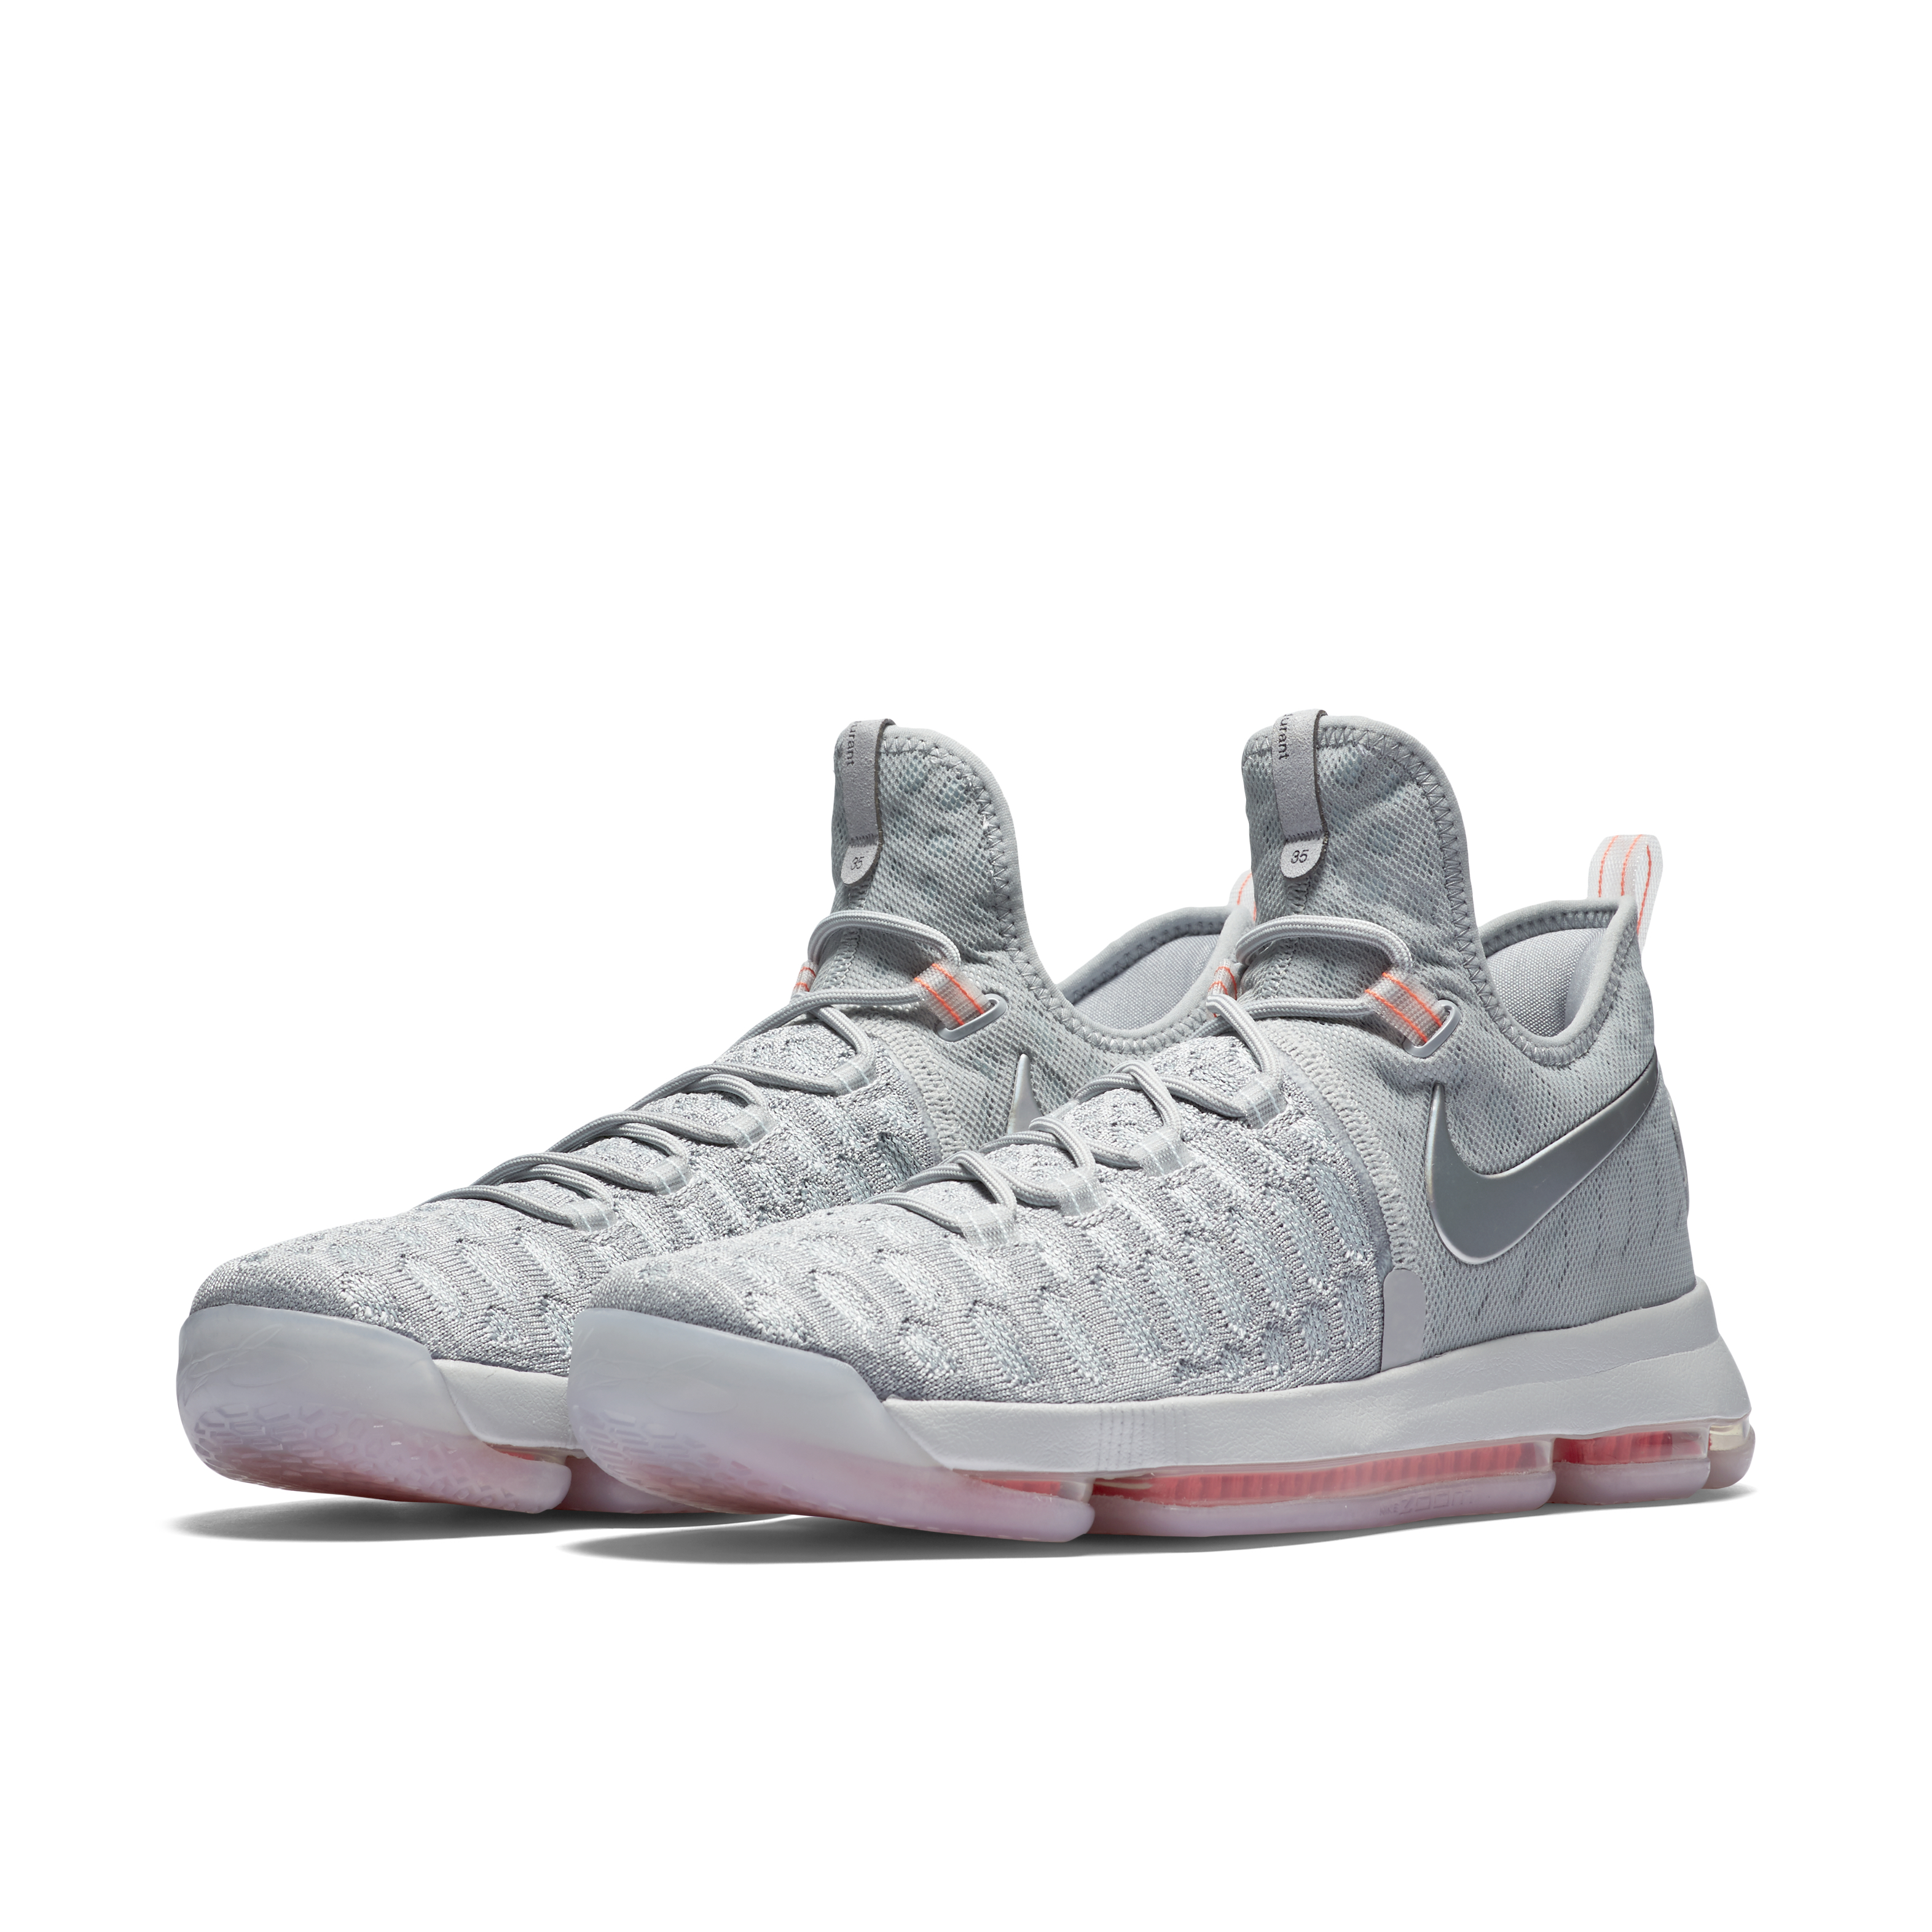 c86c31fe7b9 The Nike KD9 Launch and Upcoming Colorways - WearTesters